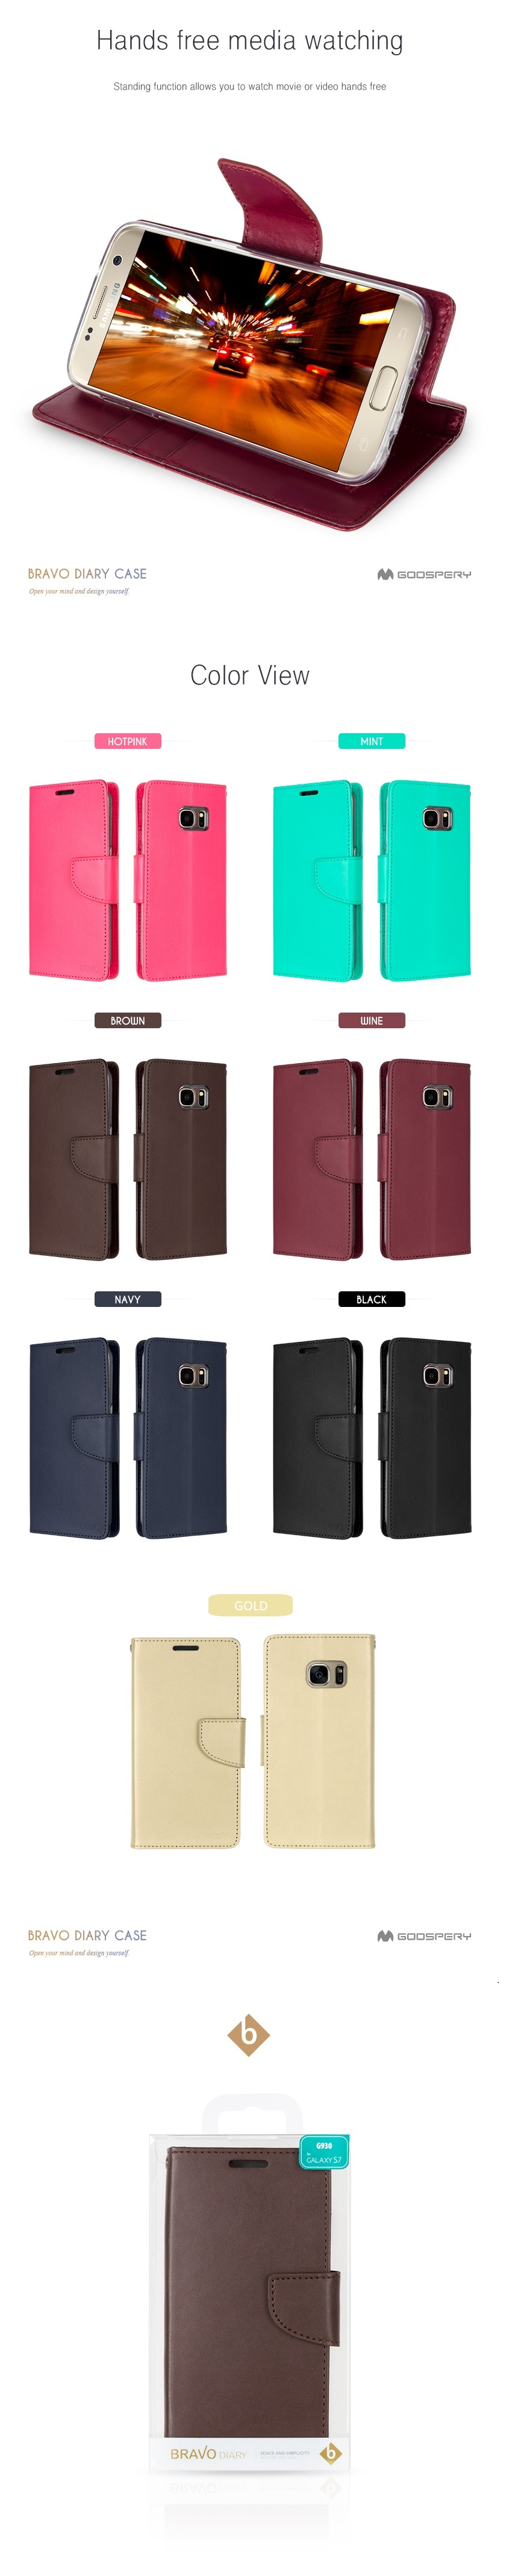 Every Need Want Day Goospery Samsung Galaxy S9 Plus Fancy Diary Case Black Brown Been Switched To A Transparent Jelly For The Following Phone Models Iphone X Xs Max Xr Note 8 9